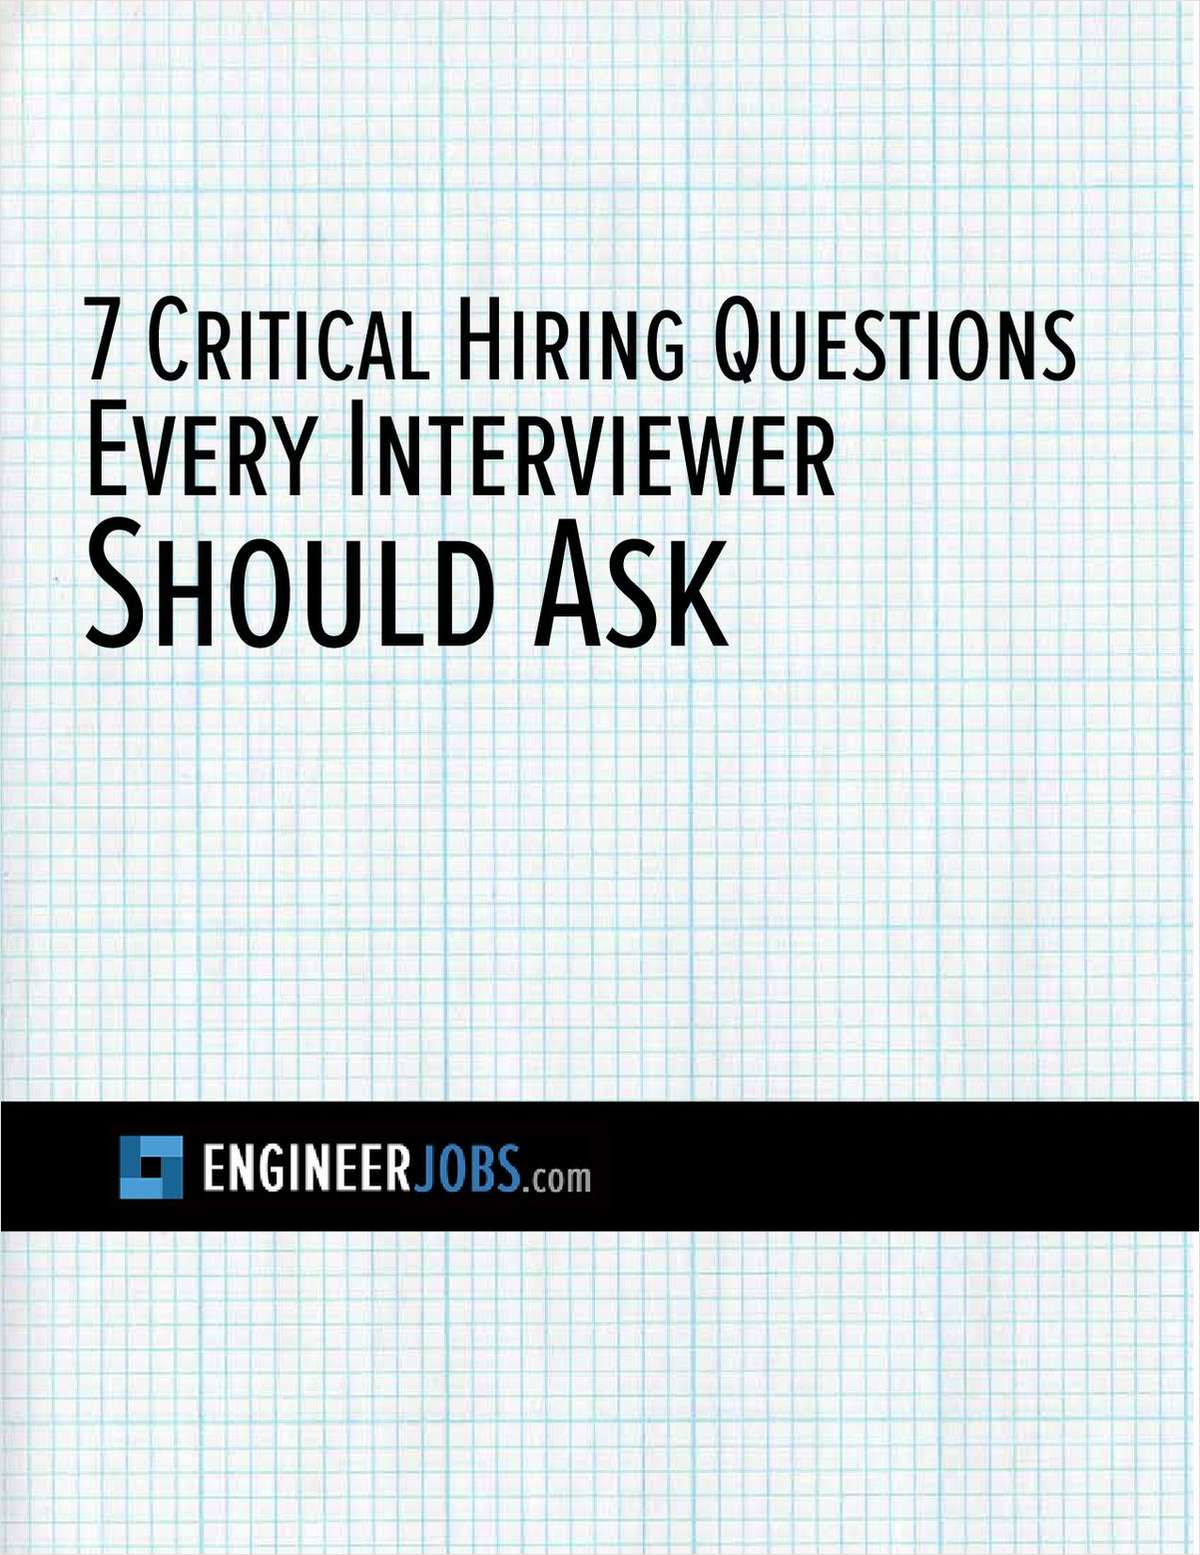 7 Critical Hiring Questions Every Interviewer Should Ask